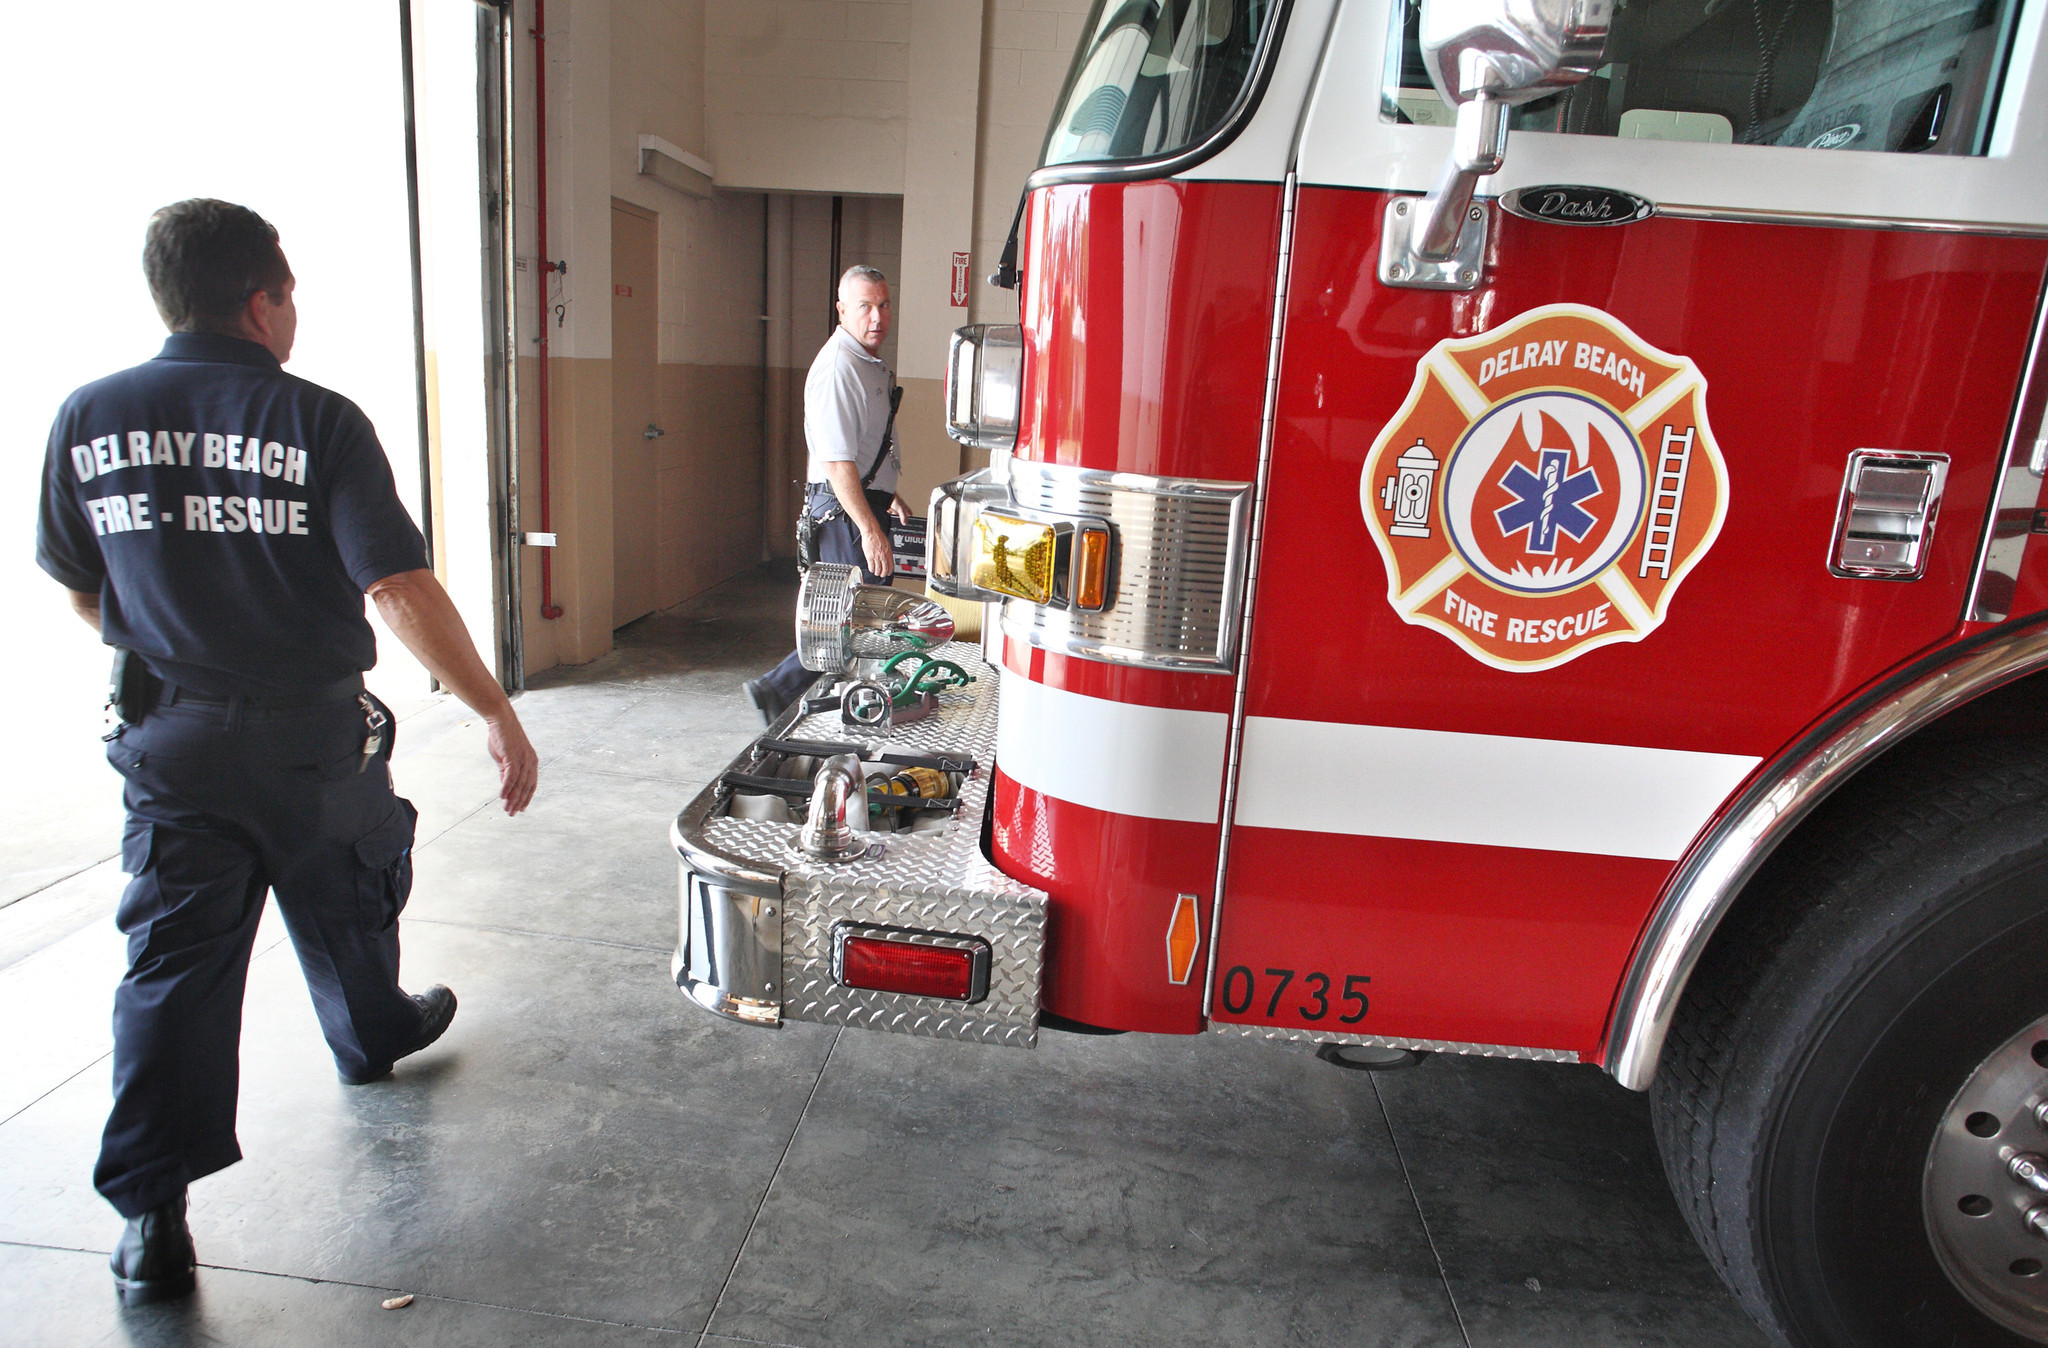 As Delray Beach Rejects Proposal To Merge Fire Rescue Service Union Pushes For Improvements Sun Sentinel